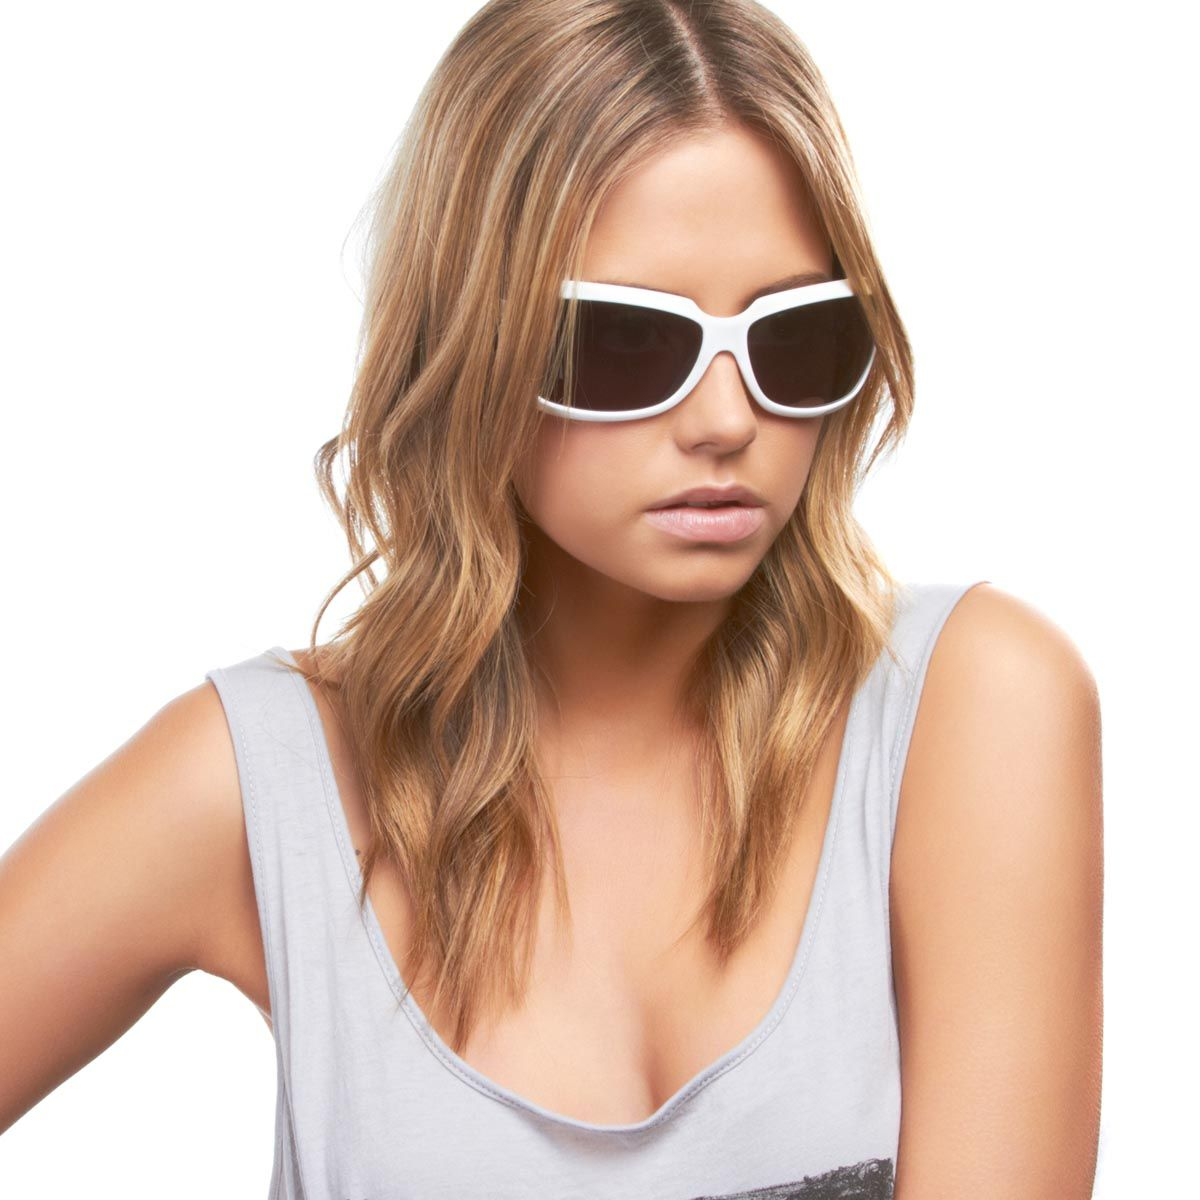 d106fef27c8 Carve from Giselle - these white or black sunglasses with thick frames and  smoked lenses are chic and functional.